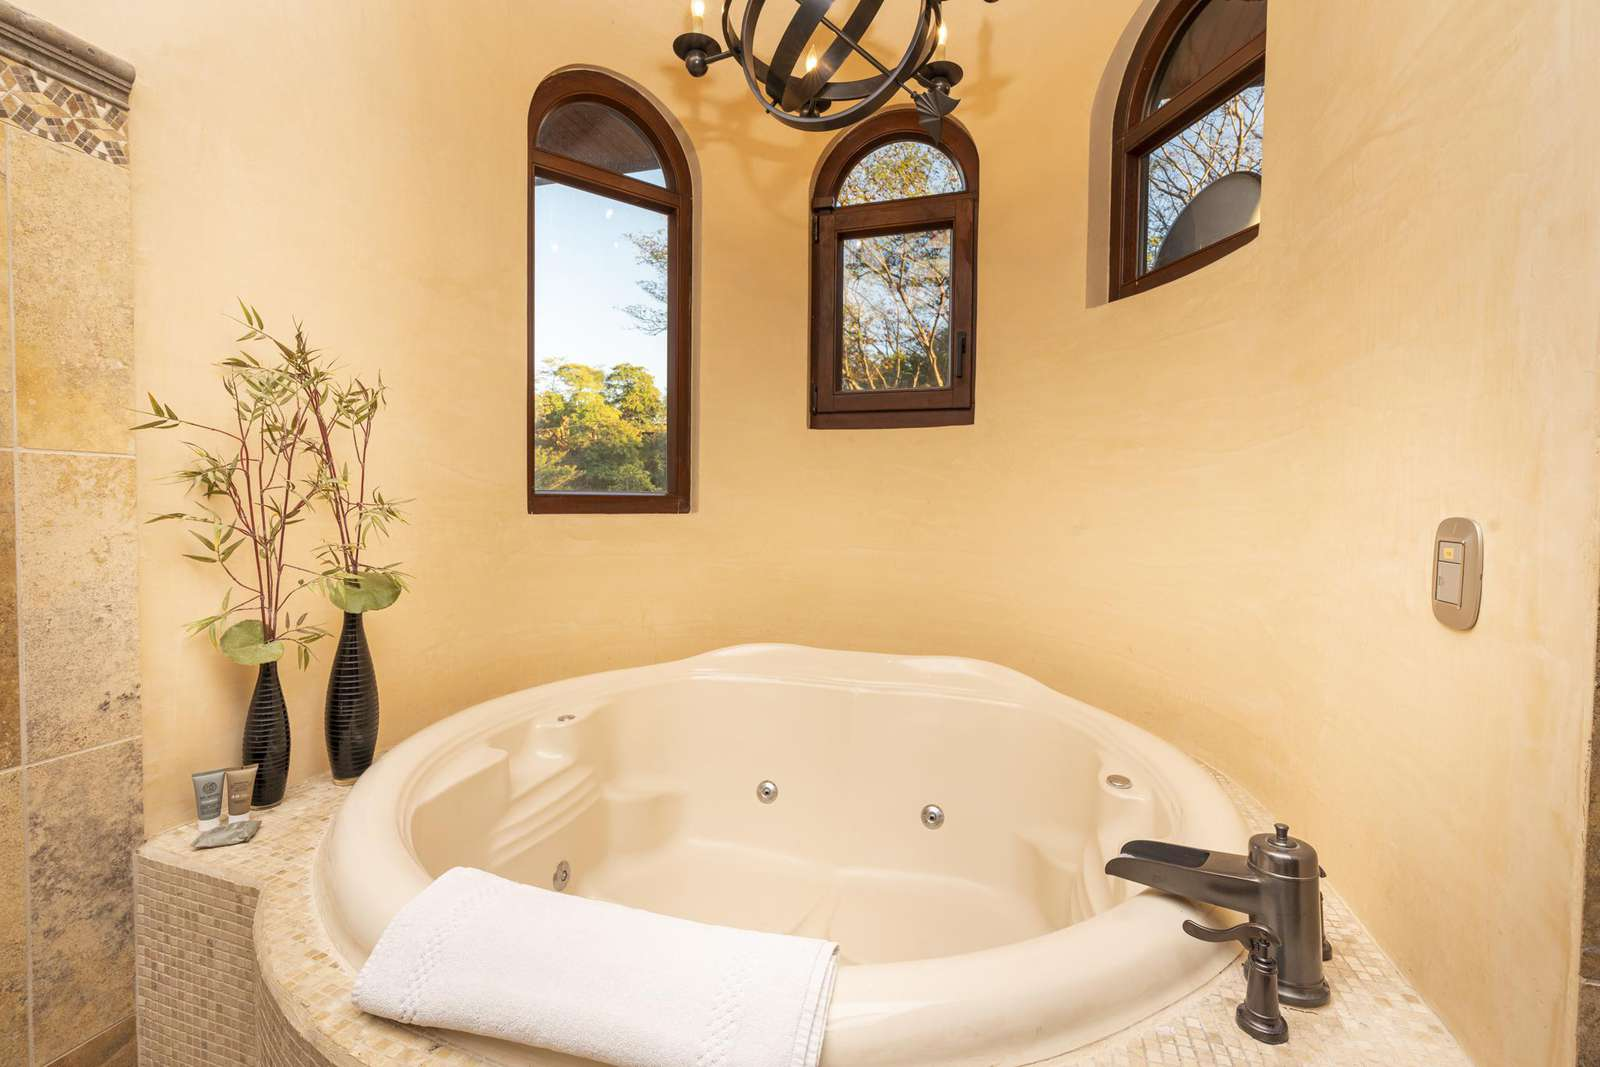 Oversized jacuzzi tub in the 2nd master bathroom